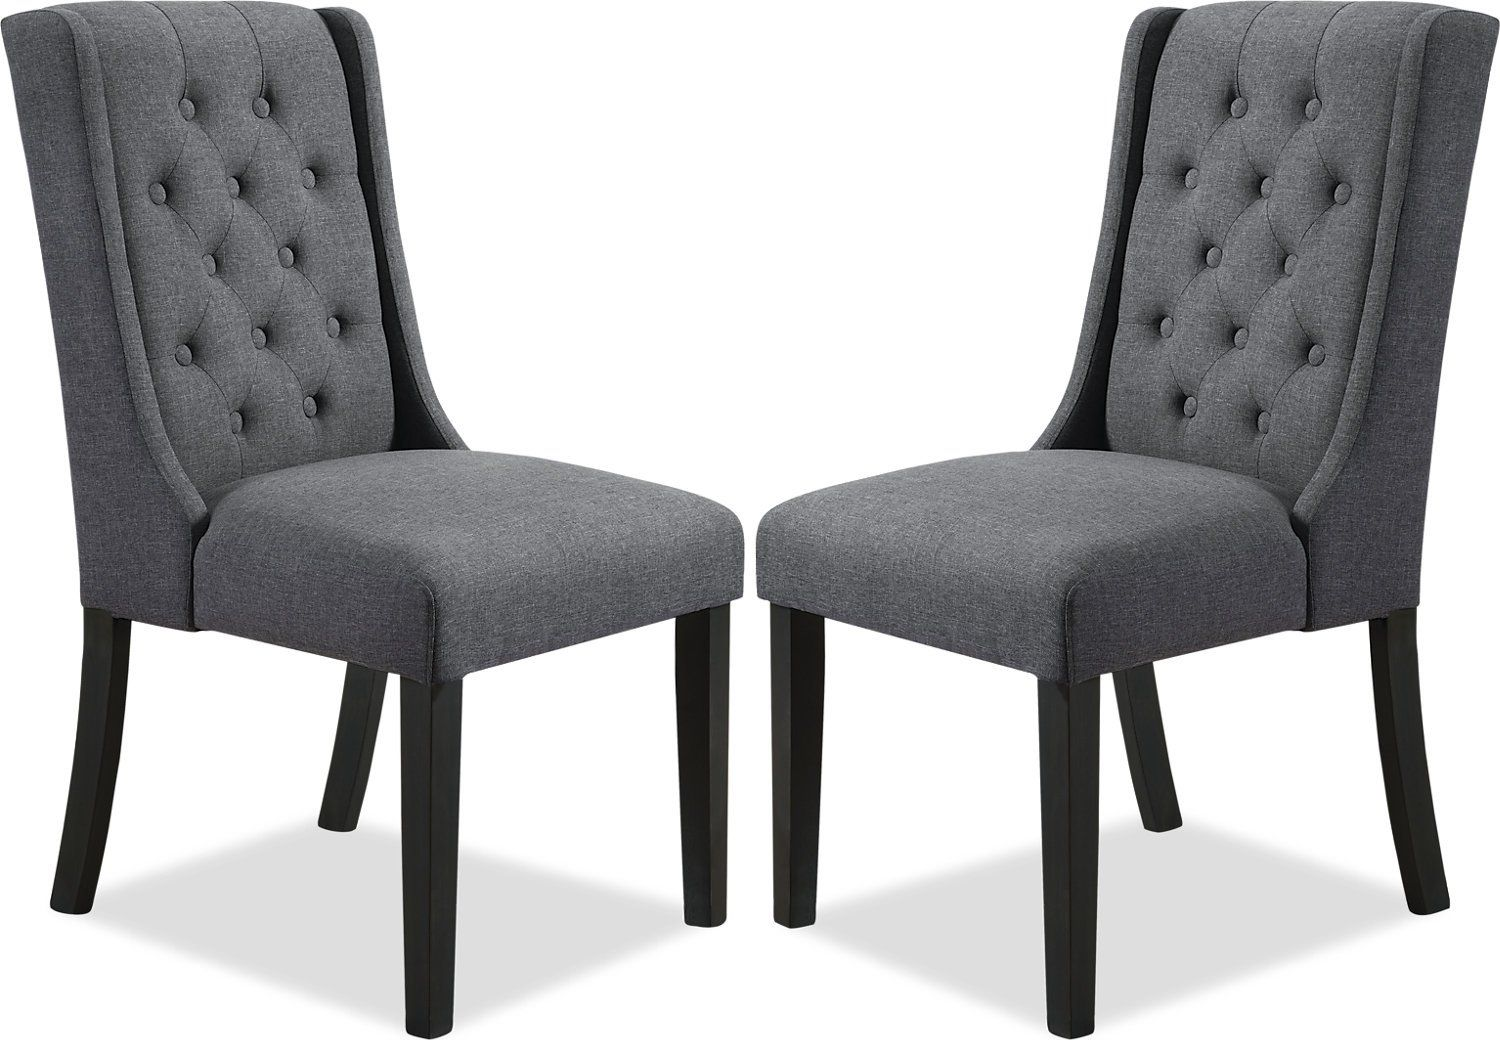 York Wingback Dining Chair Set Of 2 Grey The Brick Wingback